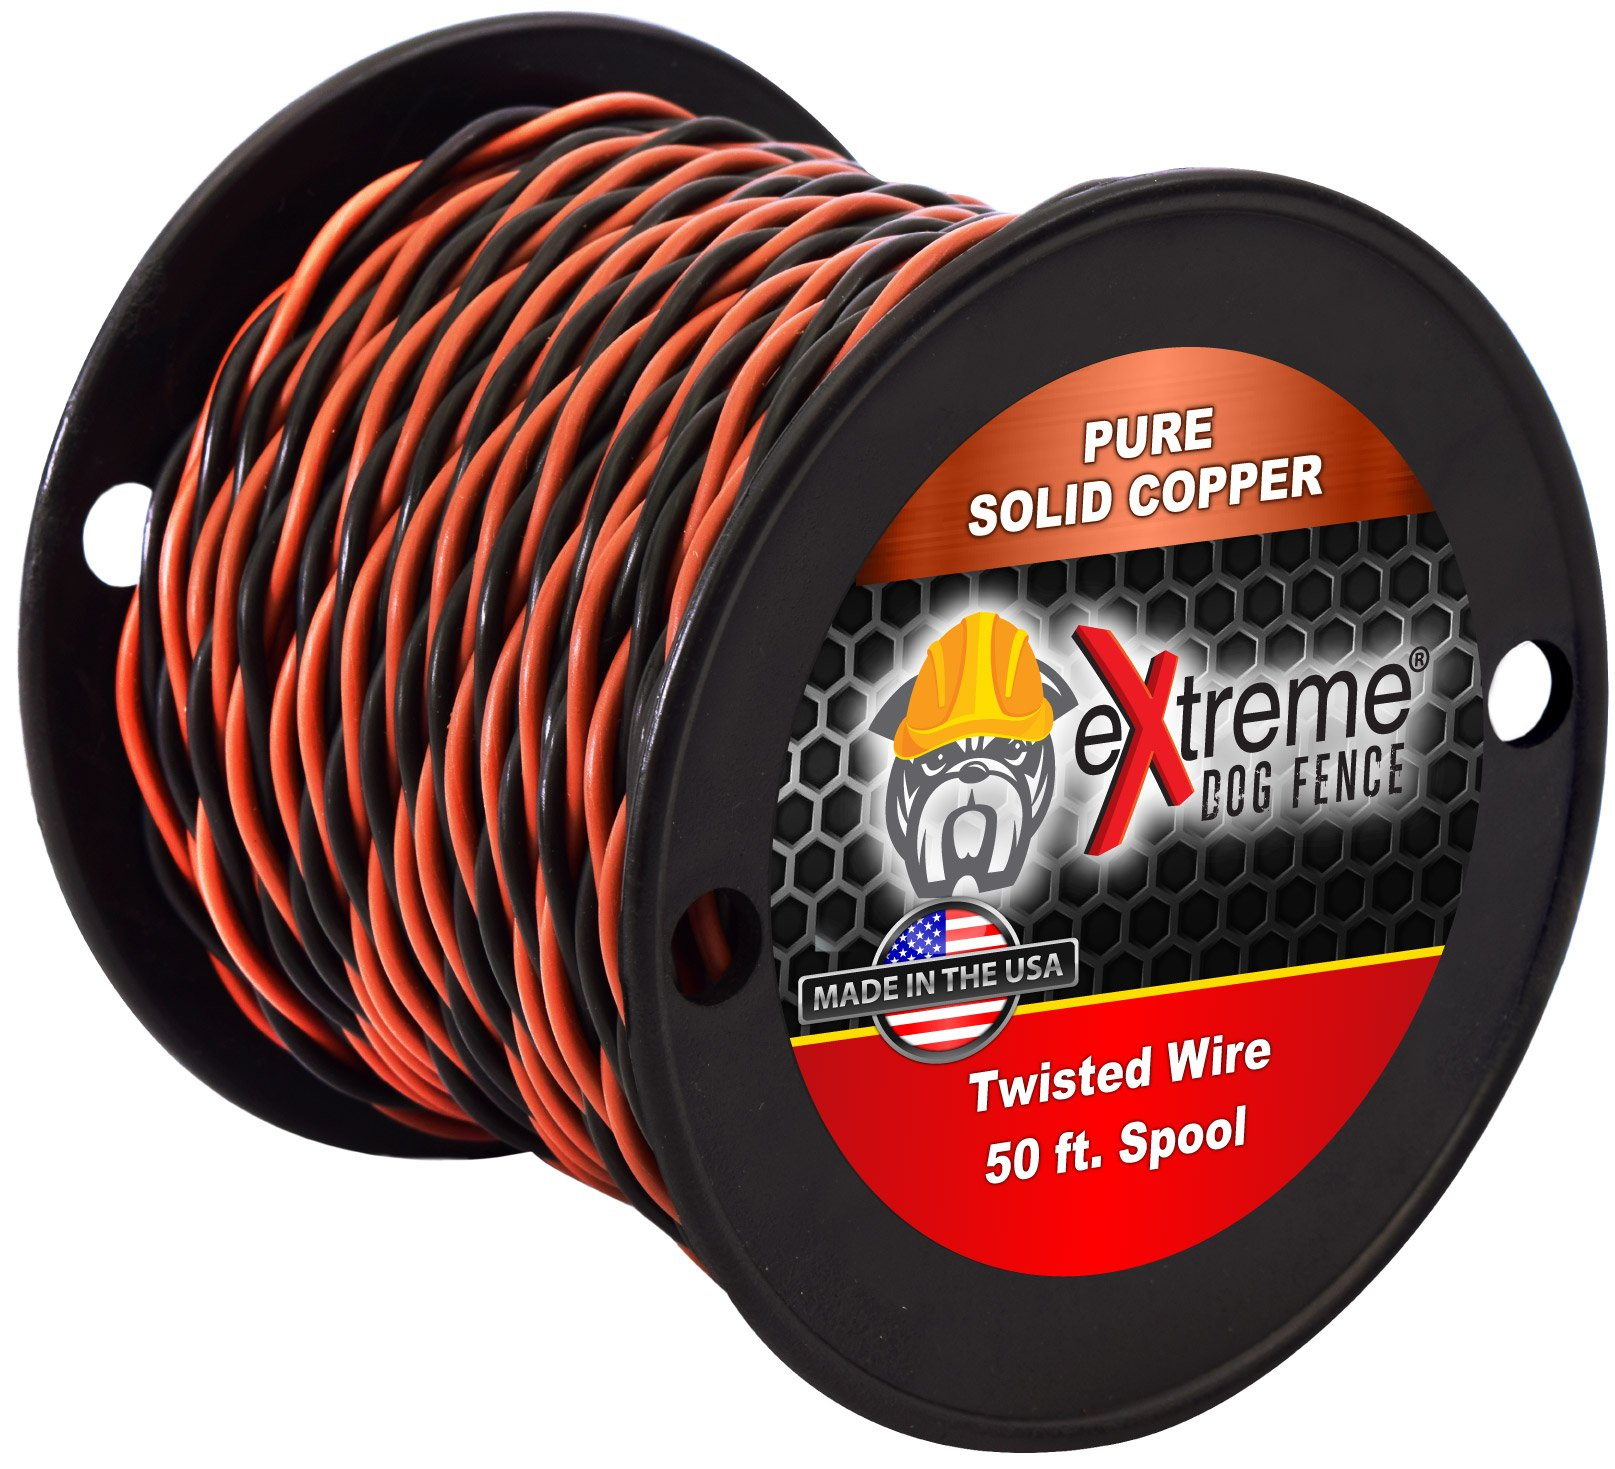 Extreme Dog Fence 16 Gauge Transmitter Wire - 50 Foot Spool of Pre-Twisted Cable - Compatible With All Wired Electric Dog Fence Systems by Extreme Dog Fence